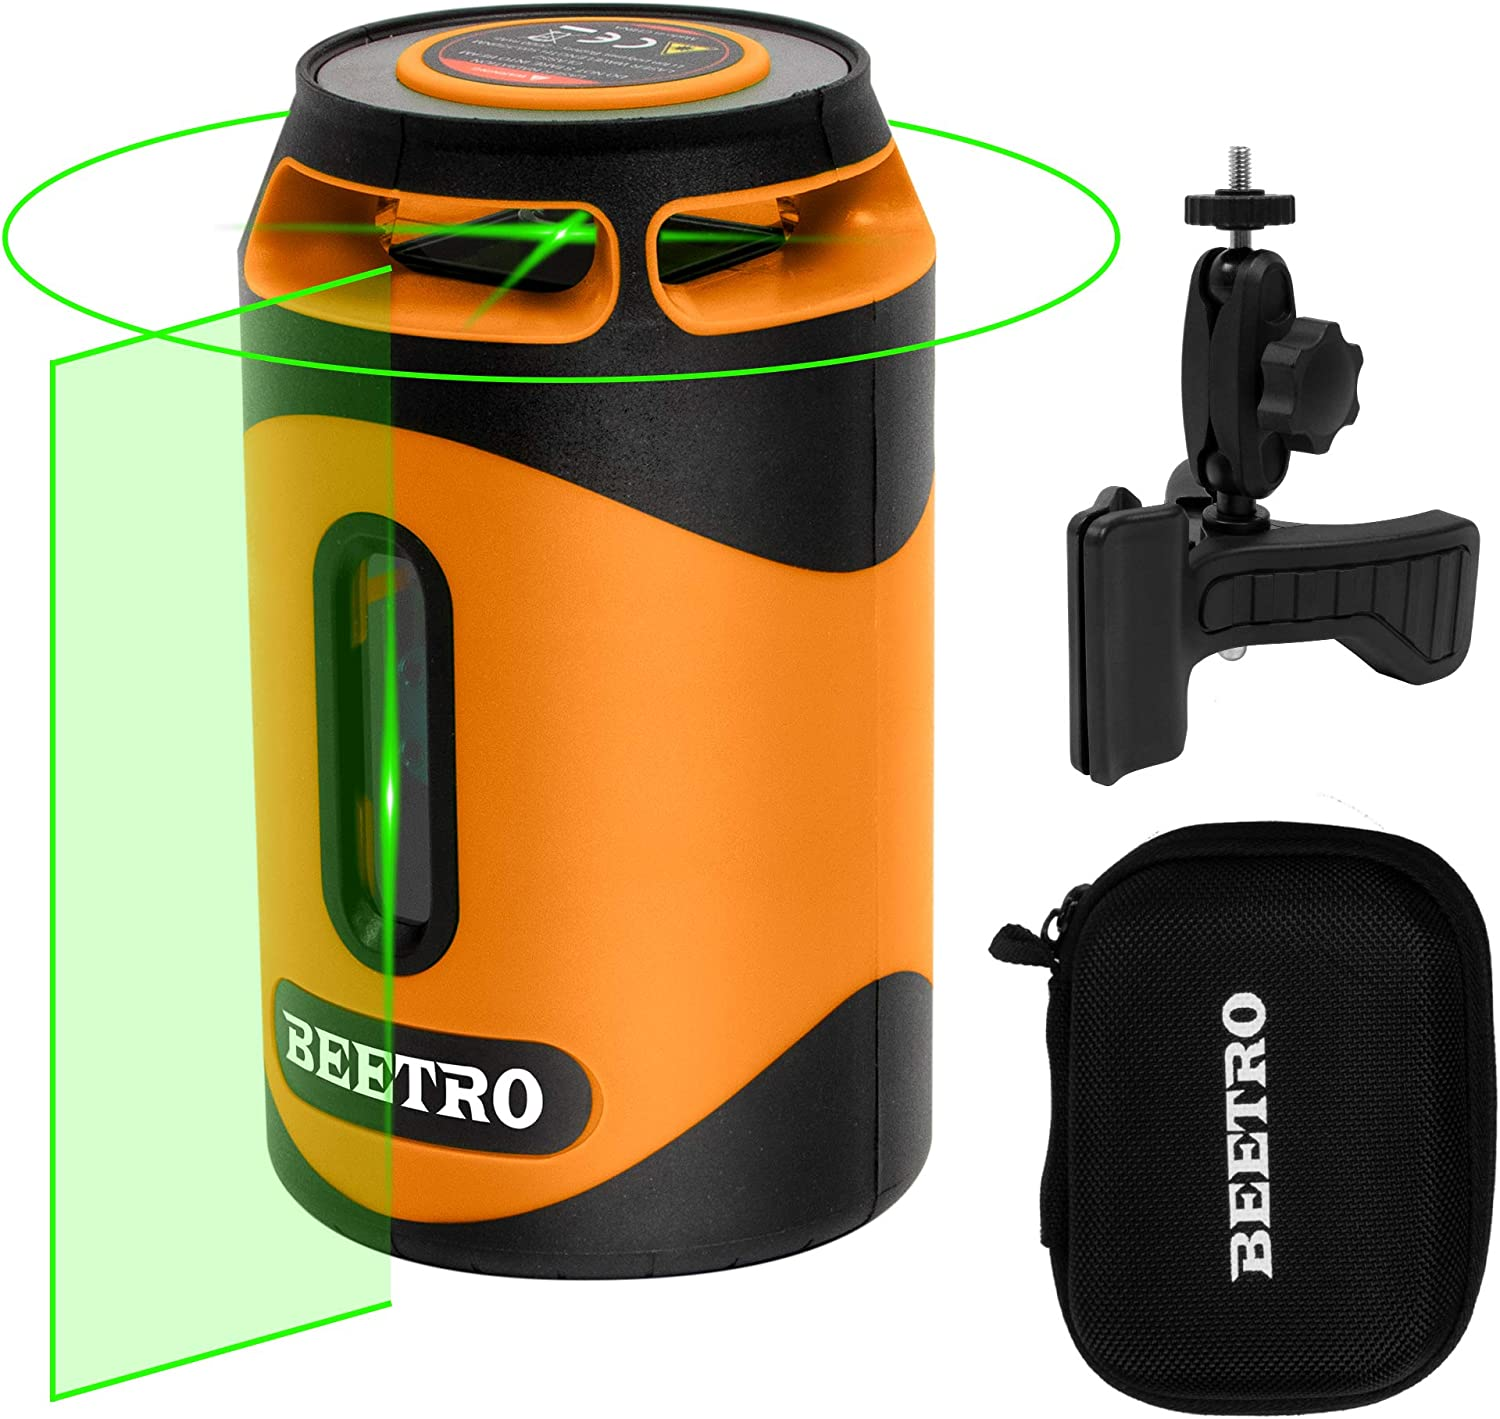 Beetro Laser Level 100ft 360° Green Cross Line Self leveling for Construction, Picture Hanging, Home Renovation, Magnetic Mount Base, 2000mAh Li-ion Battery,Laser class 2, Max Output 1mW BE0079